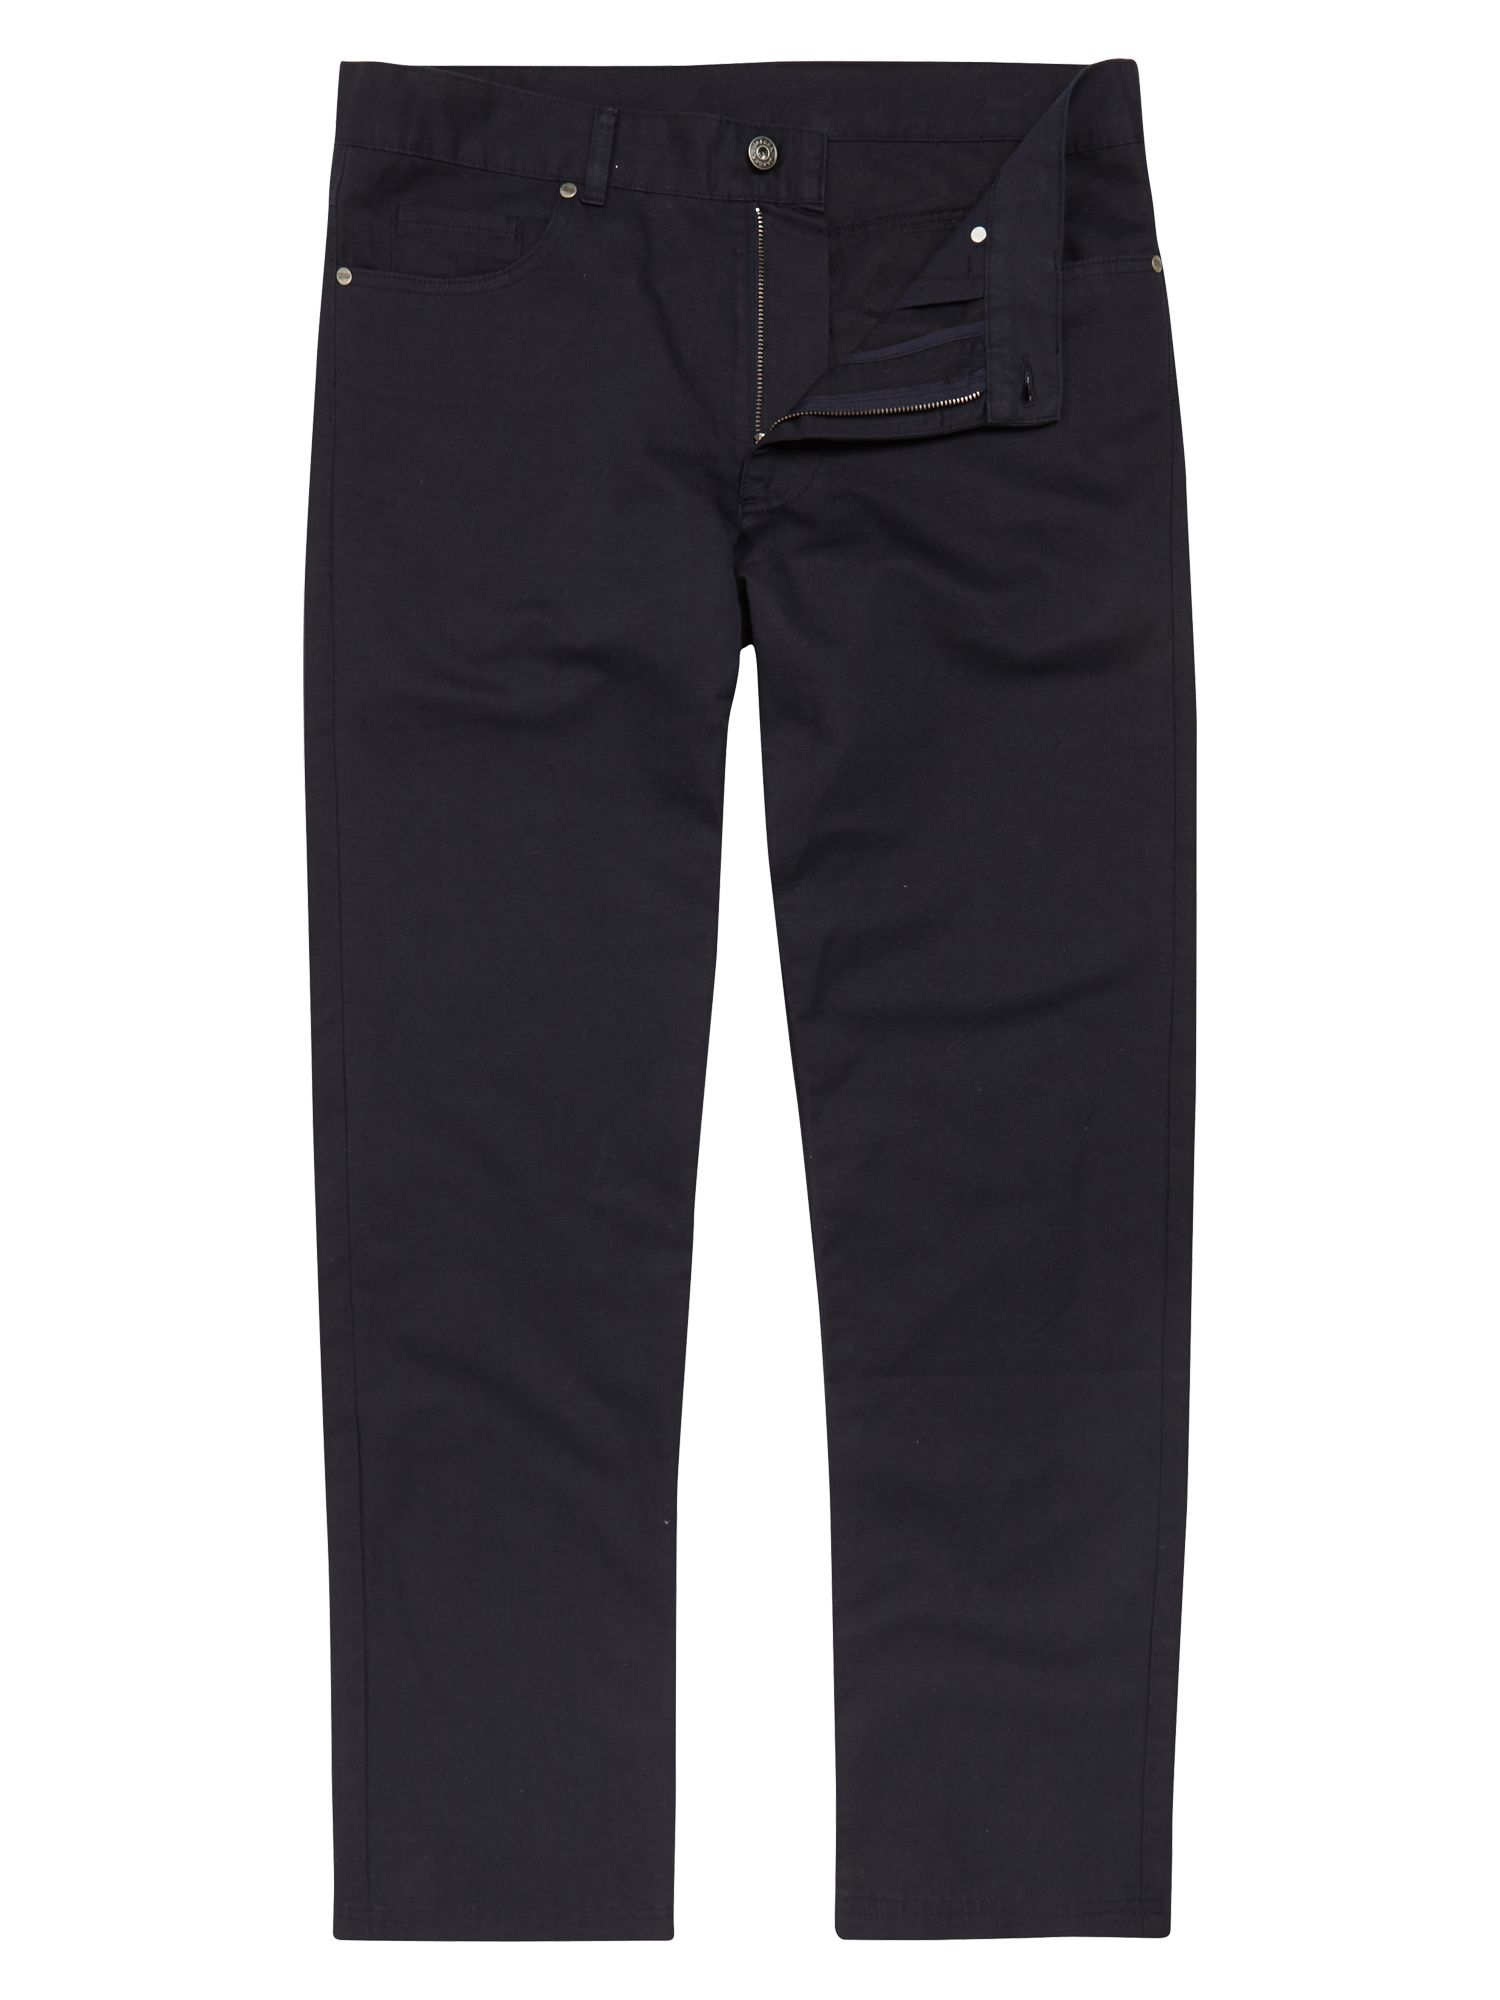 Cotton Linen casual Trousers